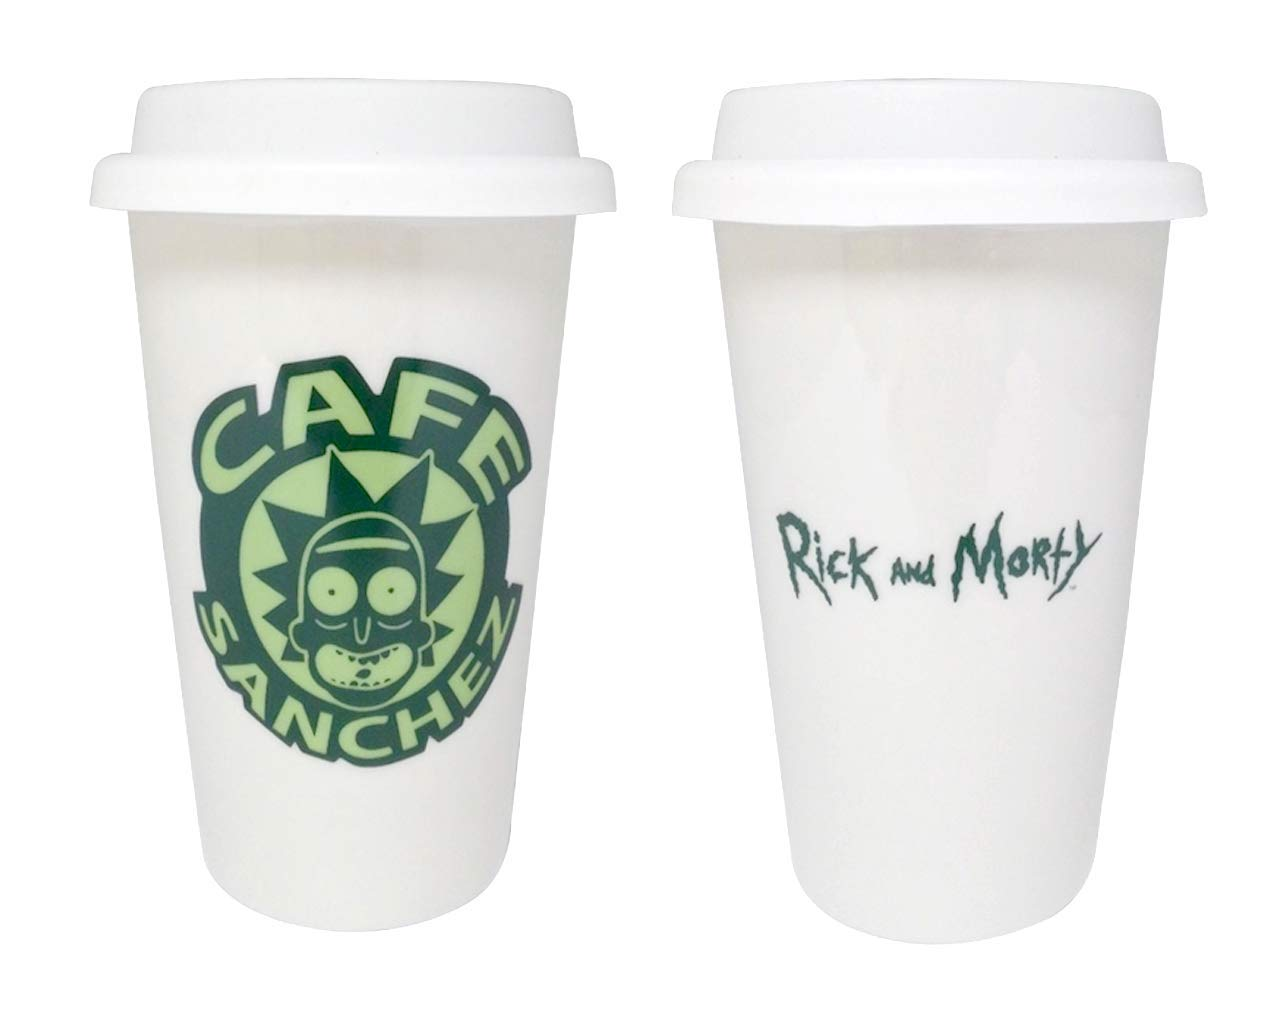 e46d3915f65 Amazon.com: JUST FUNKY Rick and Morty Travel Mug, White Ceramic Cafe  Sanchez with Double Wall Travel Mug, Set of 1, 12oz: Sports & Outdoors